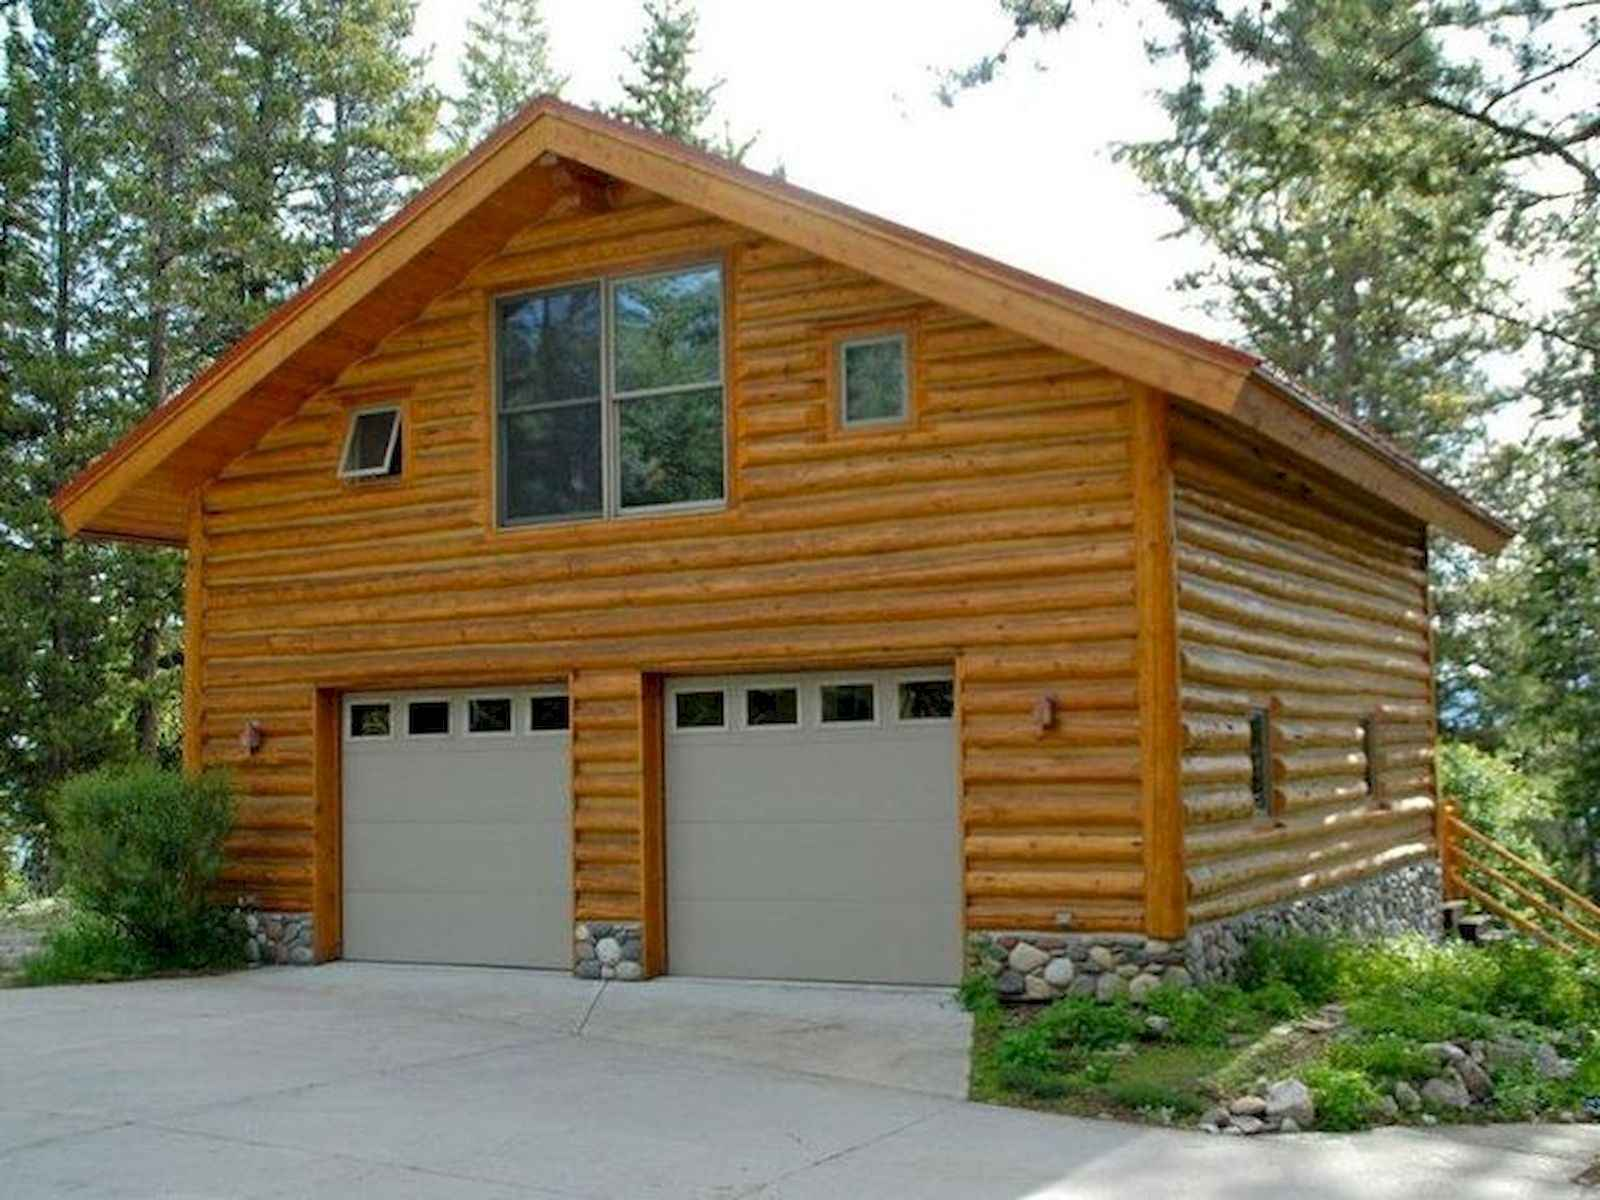 60 Rustic Log Cabin Homes Plans Design Ideas And Remodel (27)